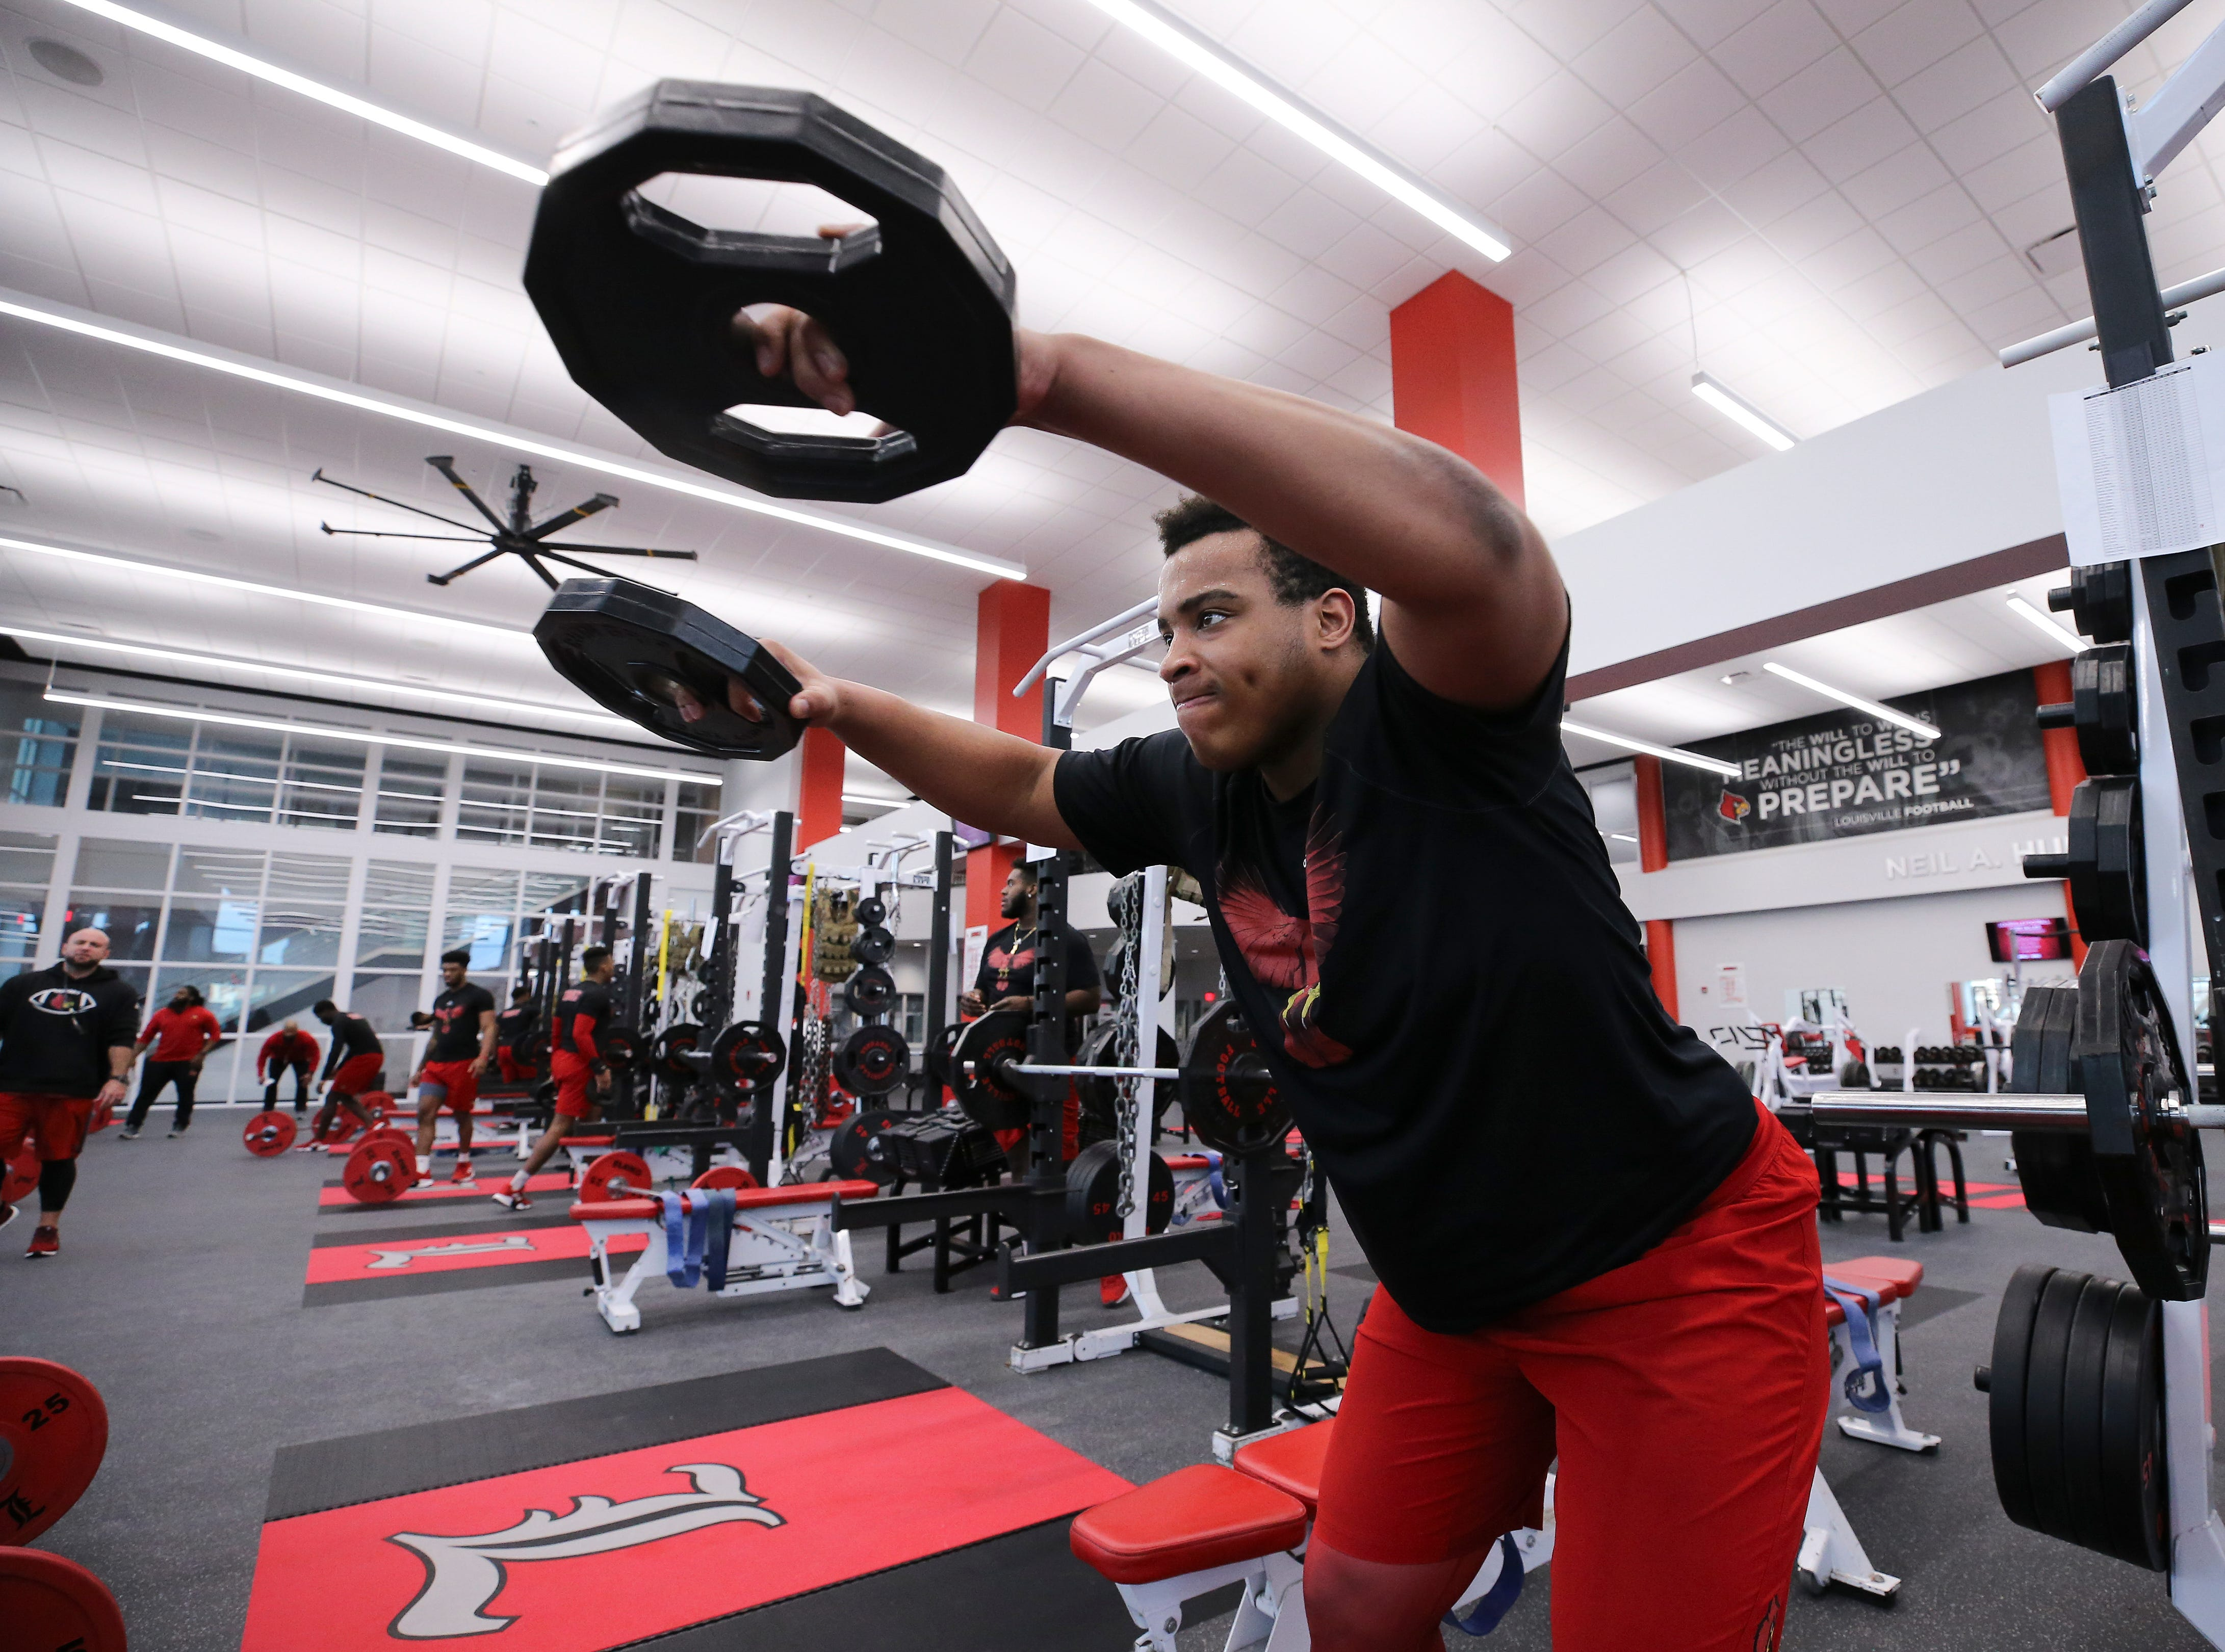 U of L's Caleb Chandler works out during strength and conditioning at the Schnellenberger Complex.